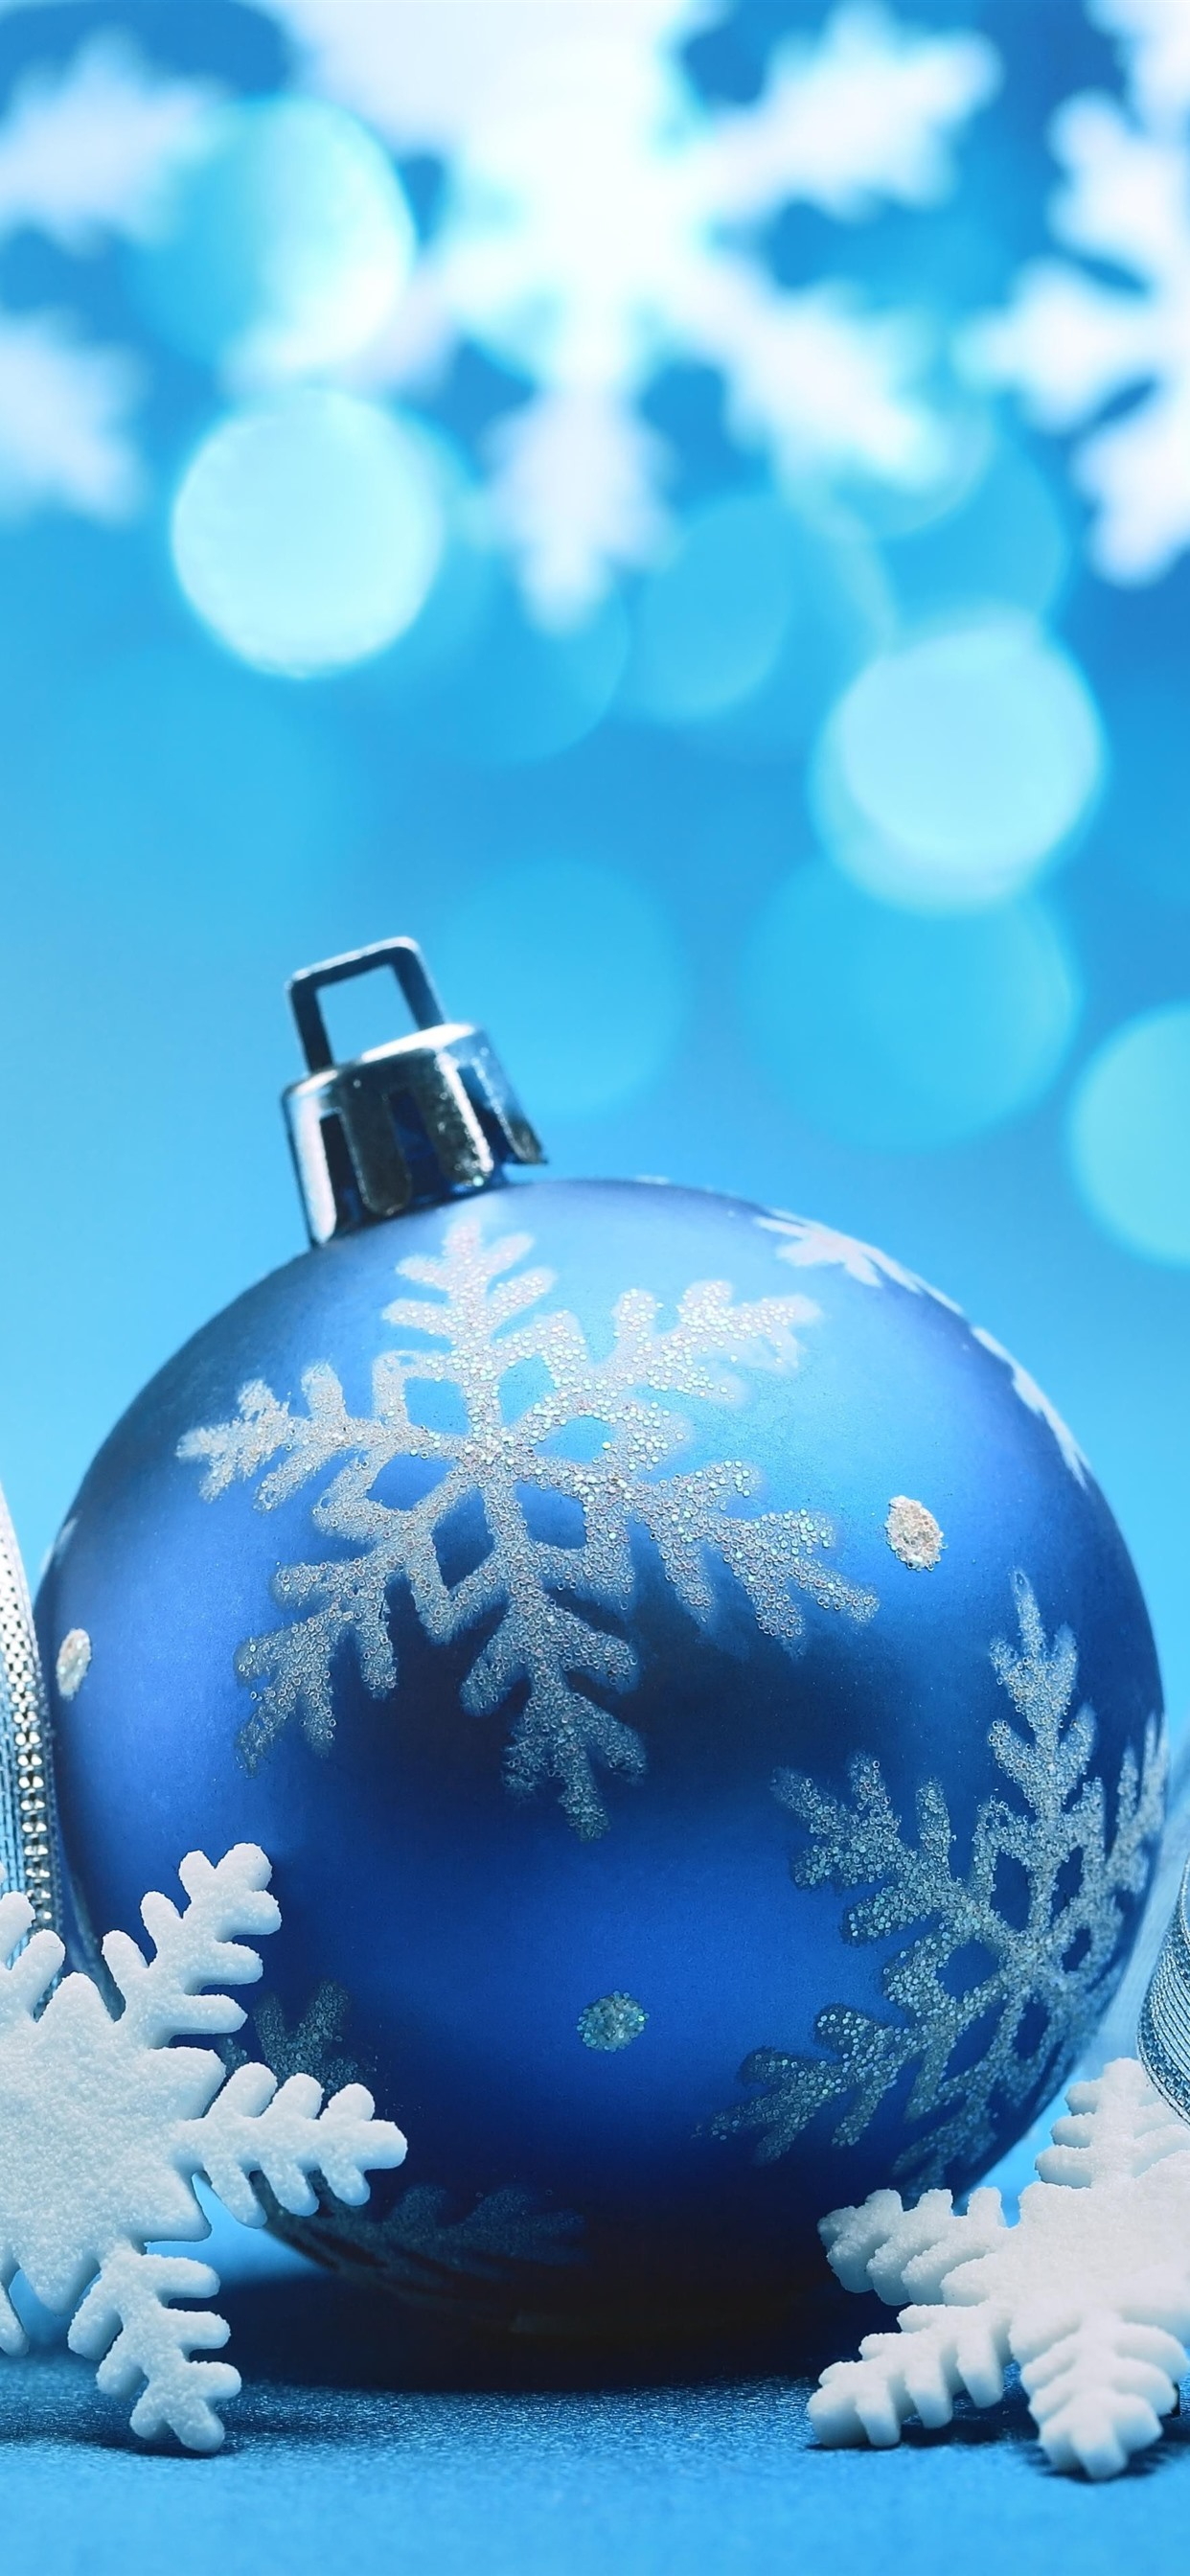 Blue Christmas Ball Ribbons Snowflakes Blue Background